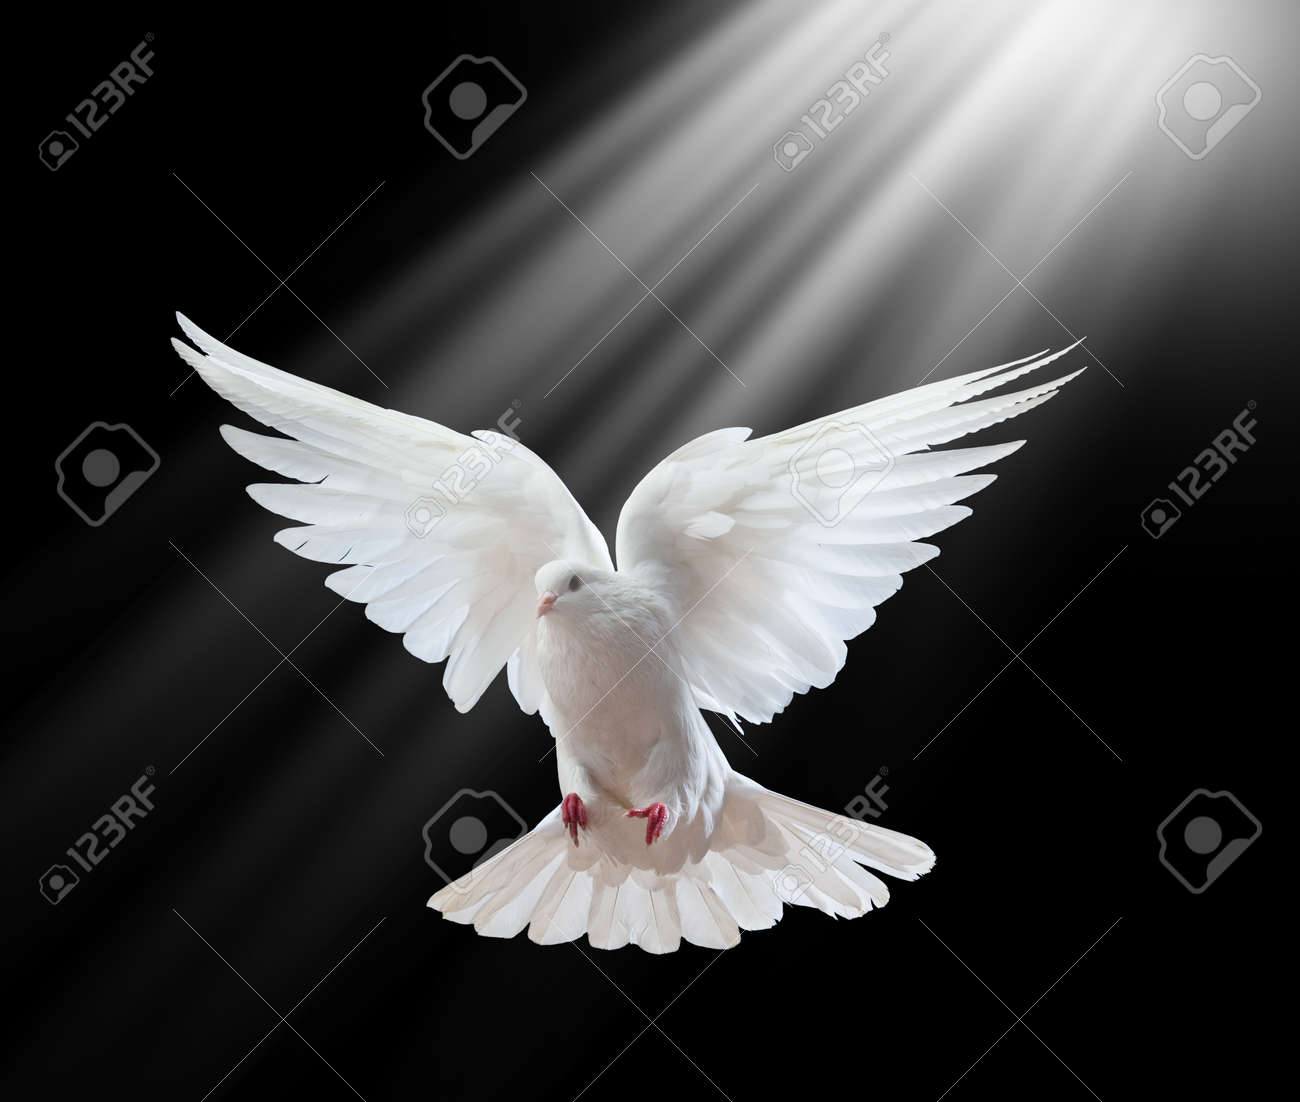 A free flying white dove isolated on a black background Stock Photo - 7501250